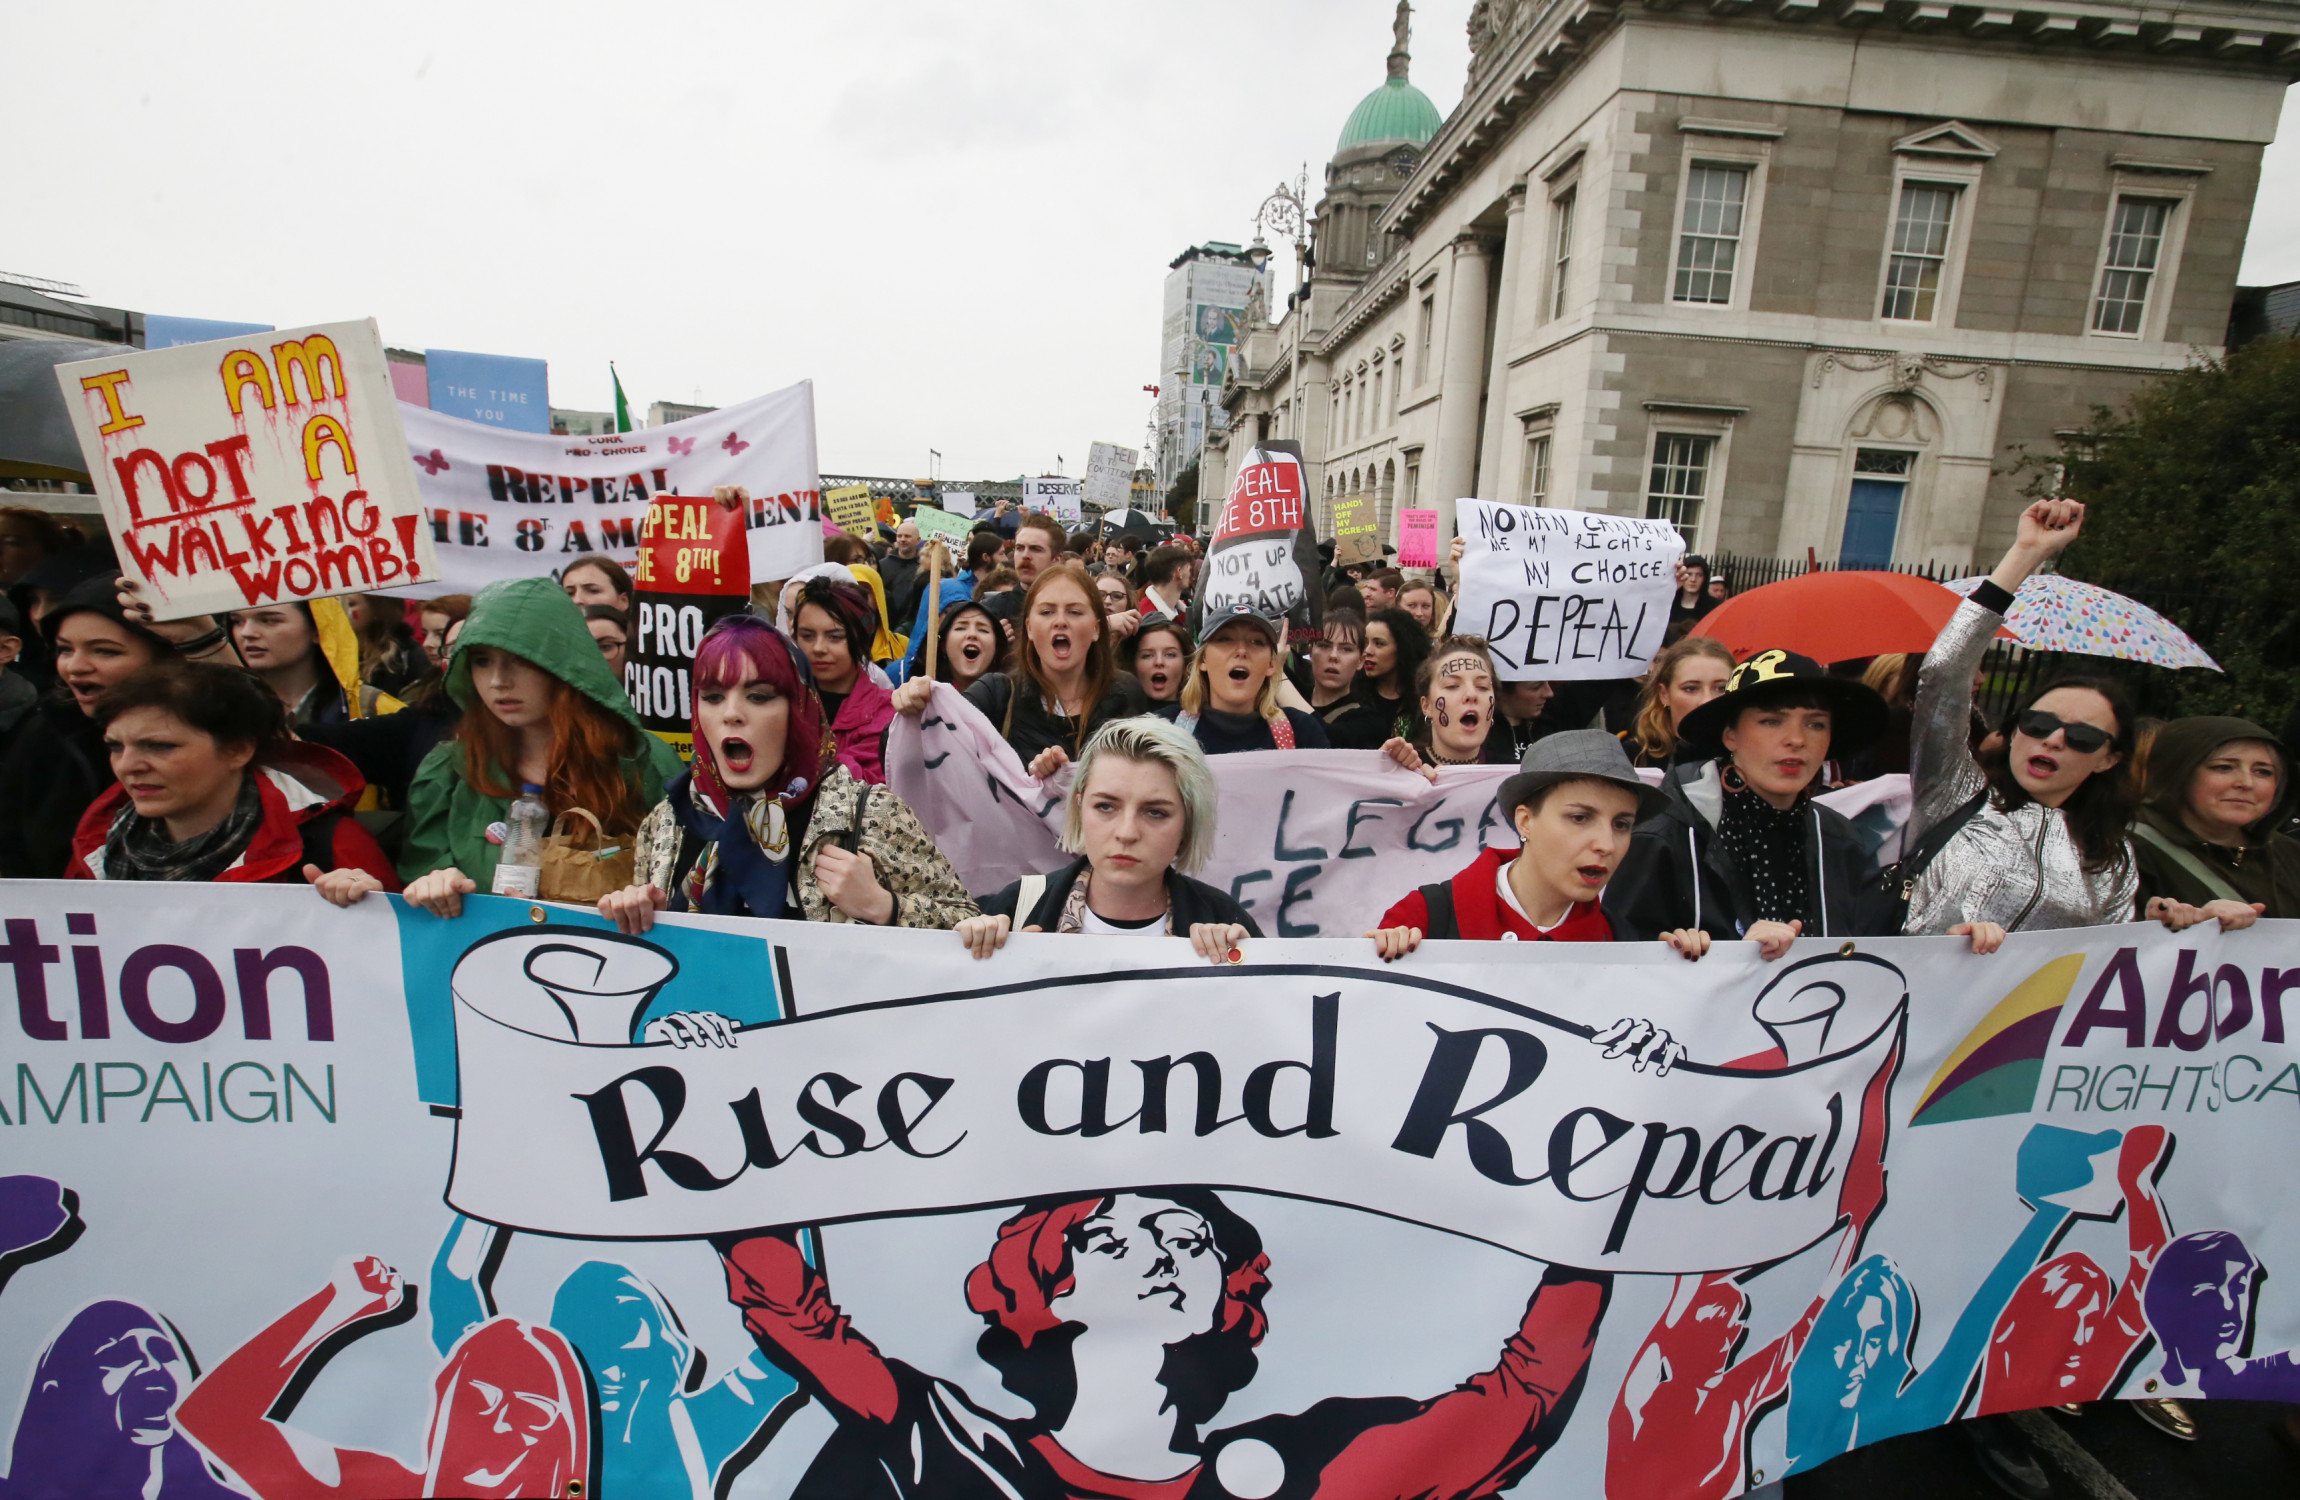 Thousands protest Irish abortion laws